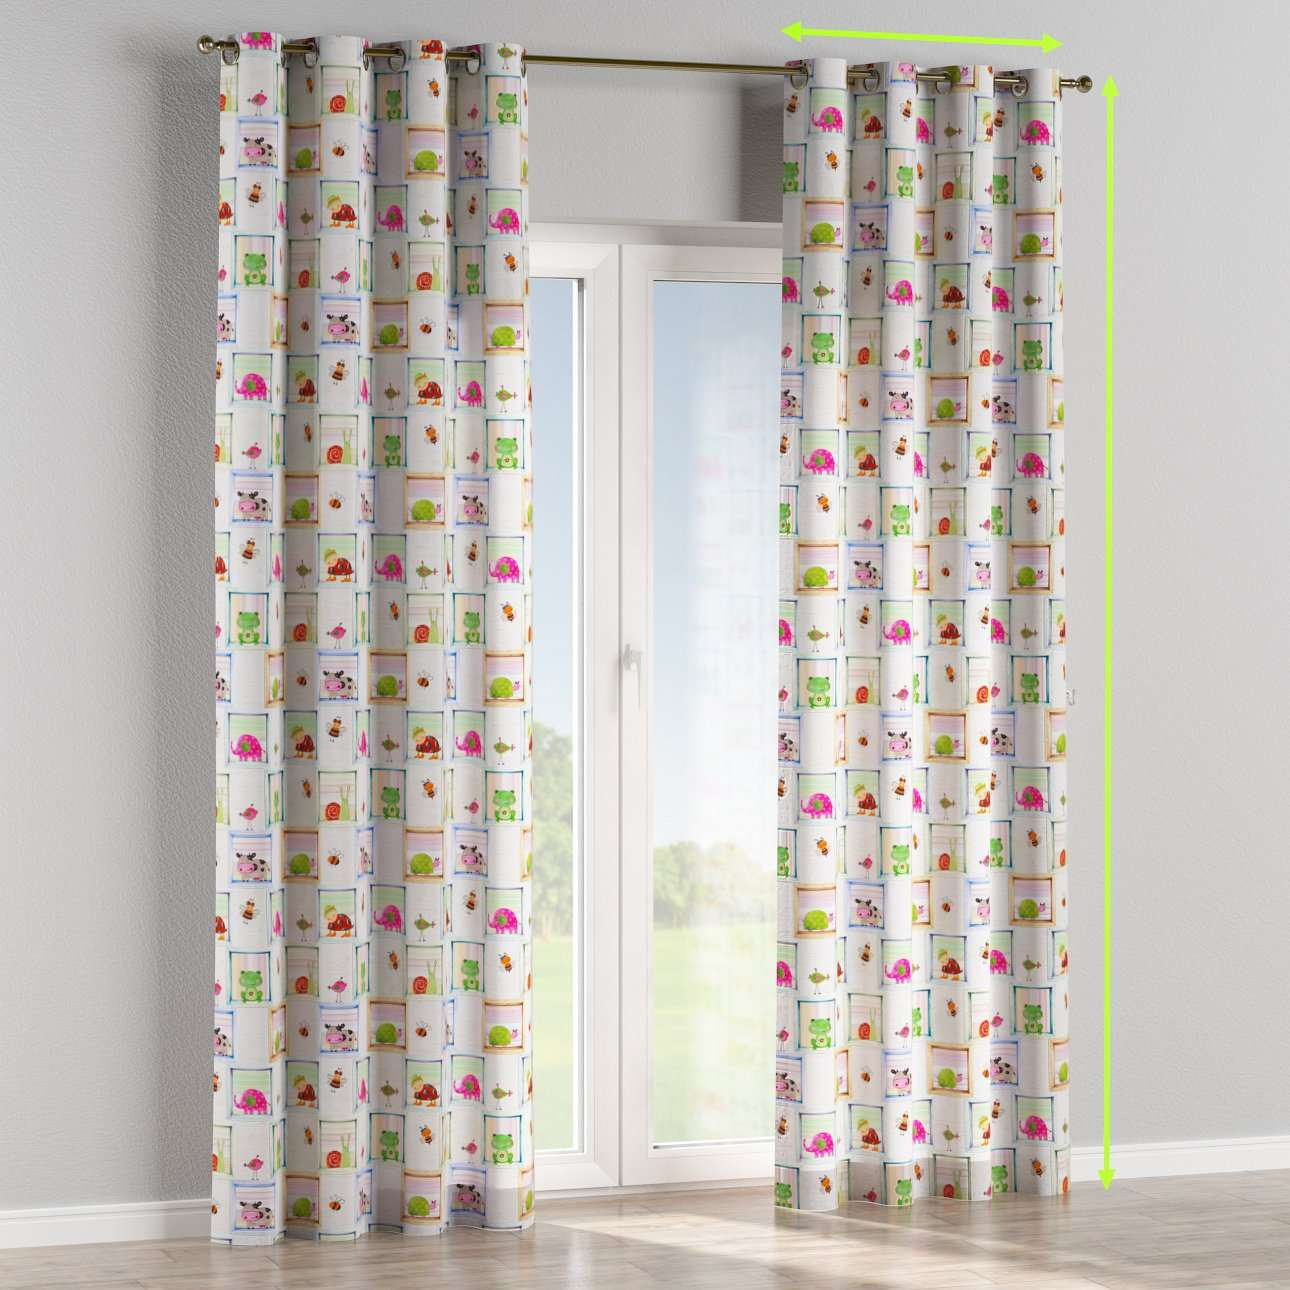 Eyelet lined curtains in collection Apanona, fabric: 151-04